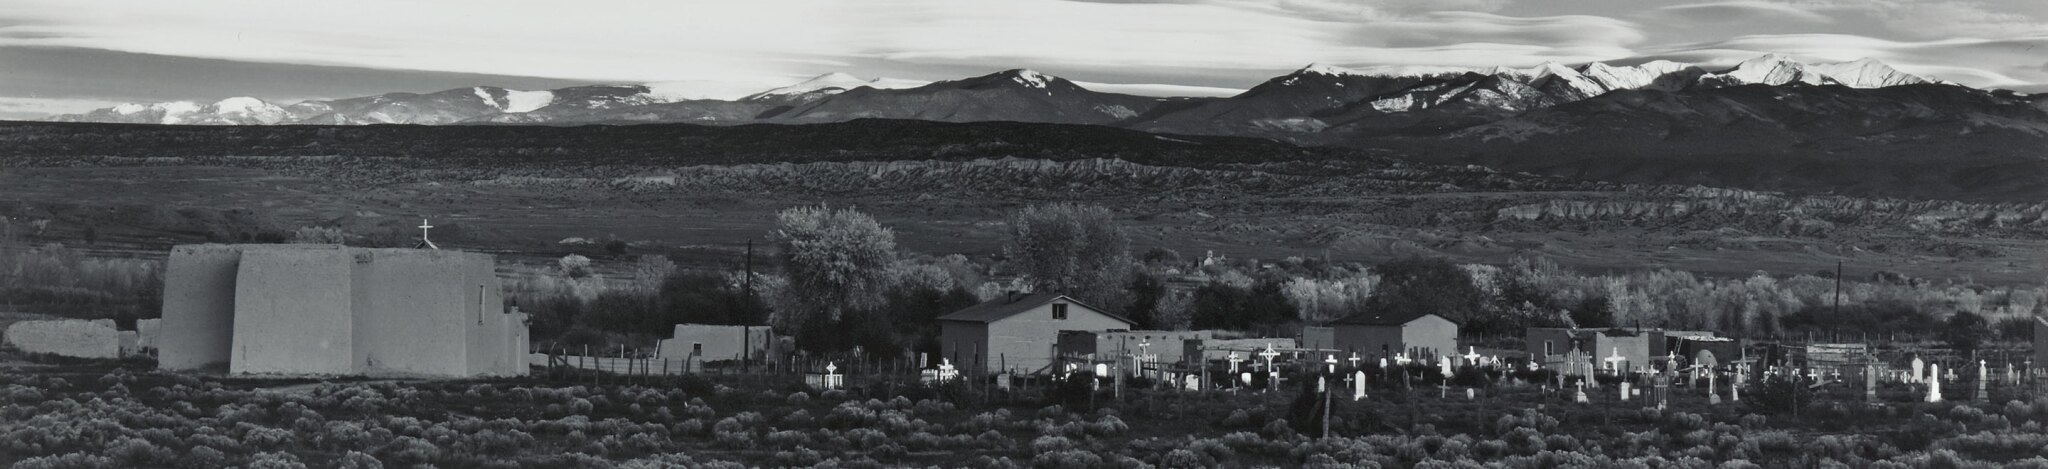 A Grand Vision: The David H. Arrington Collection of Ansel Adams Masterworks